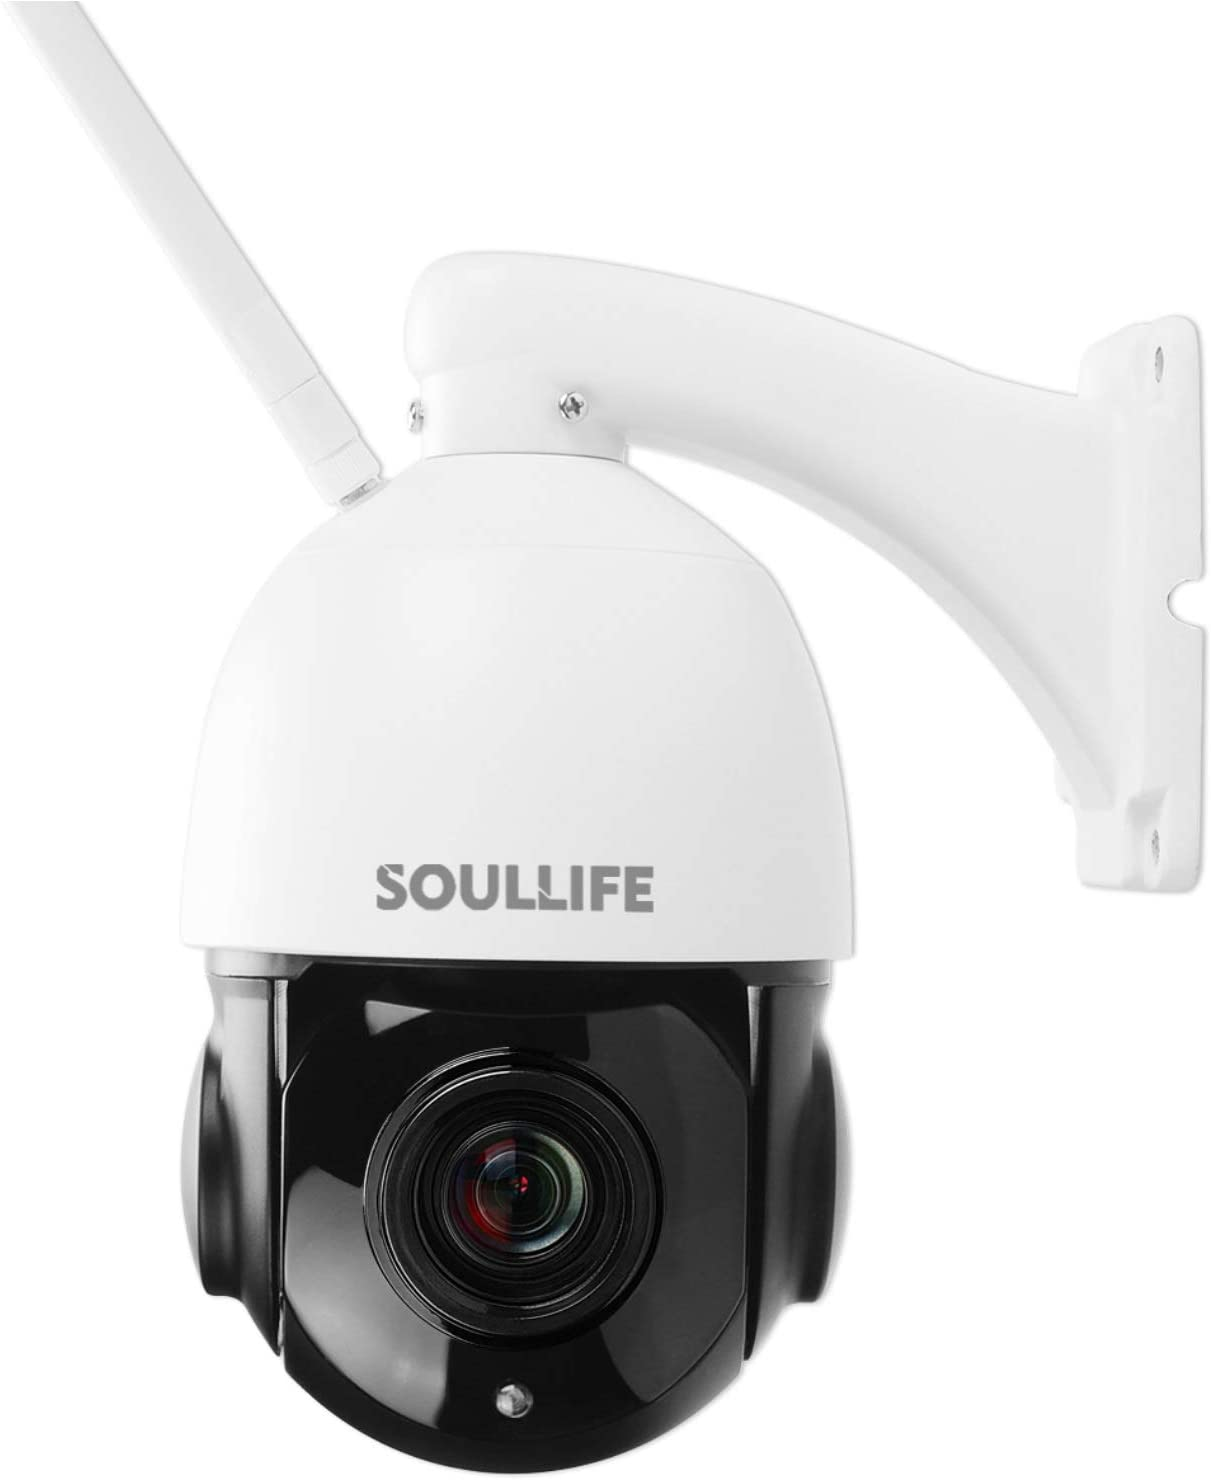 SoulLife 5MP Security Camera Outdoor, 20X Optical Zoom Compatible with CamHi, Home Surveillance IP Camera with Pan/Tilt IP66 328ft Night Vision, 2-Way Audio, Motion Detection and Instant Alert